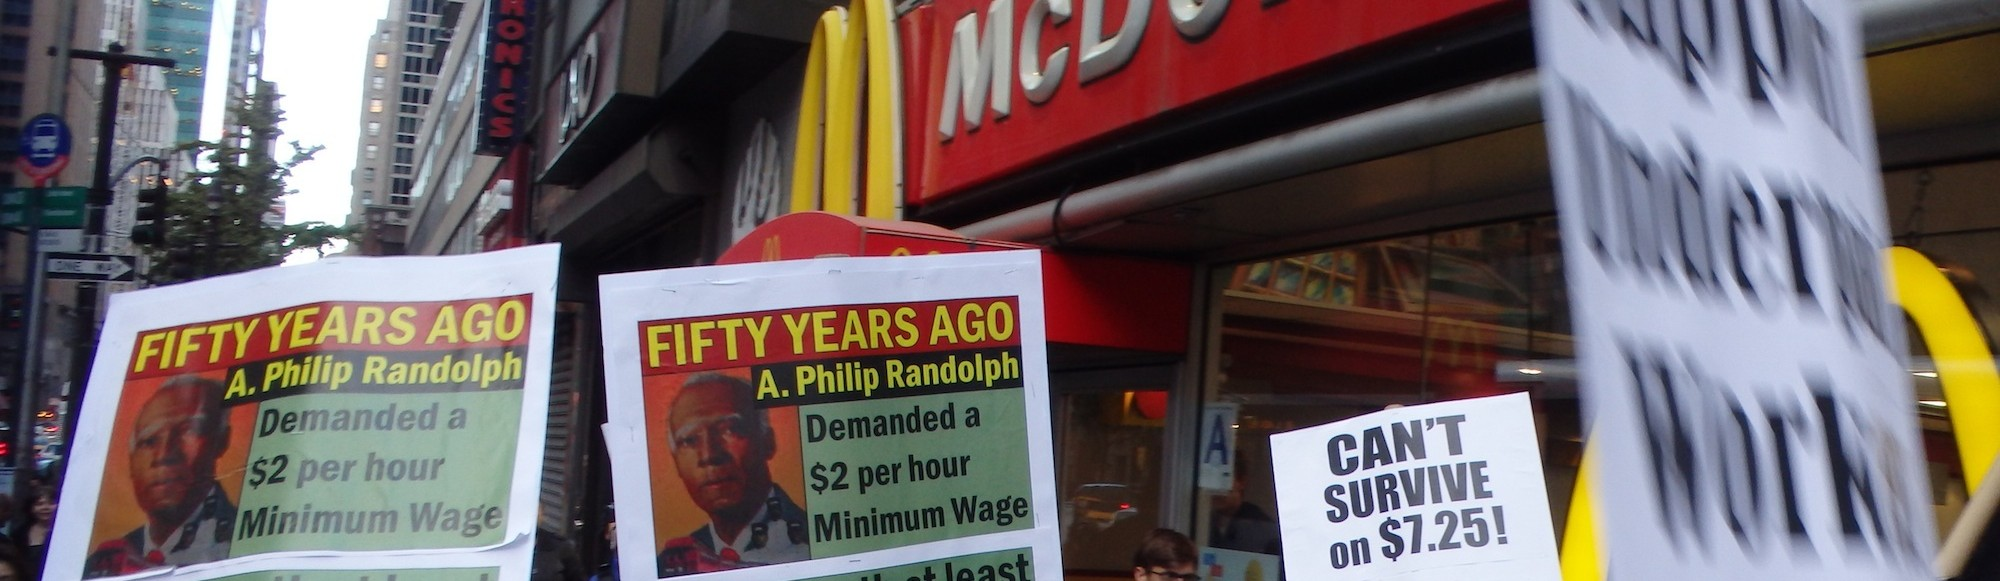 What Will Happen to the Economy If We Raise the Minimum Wage? | VICE News